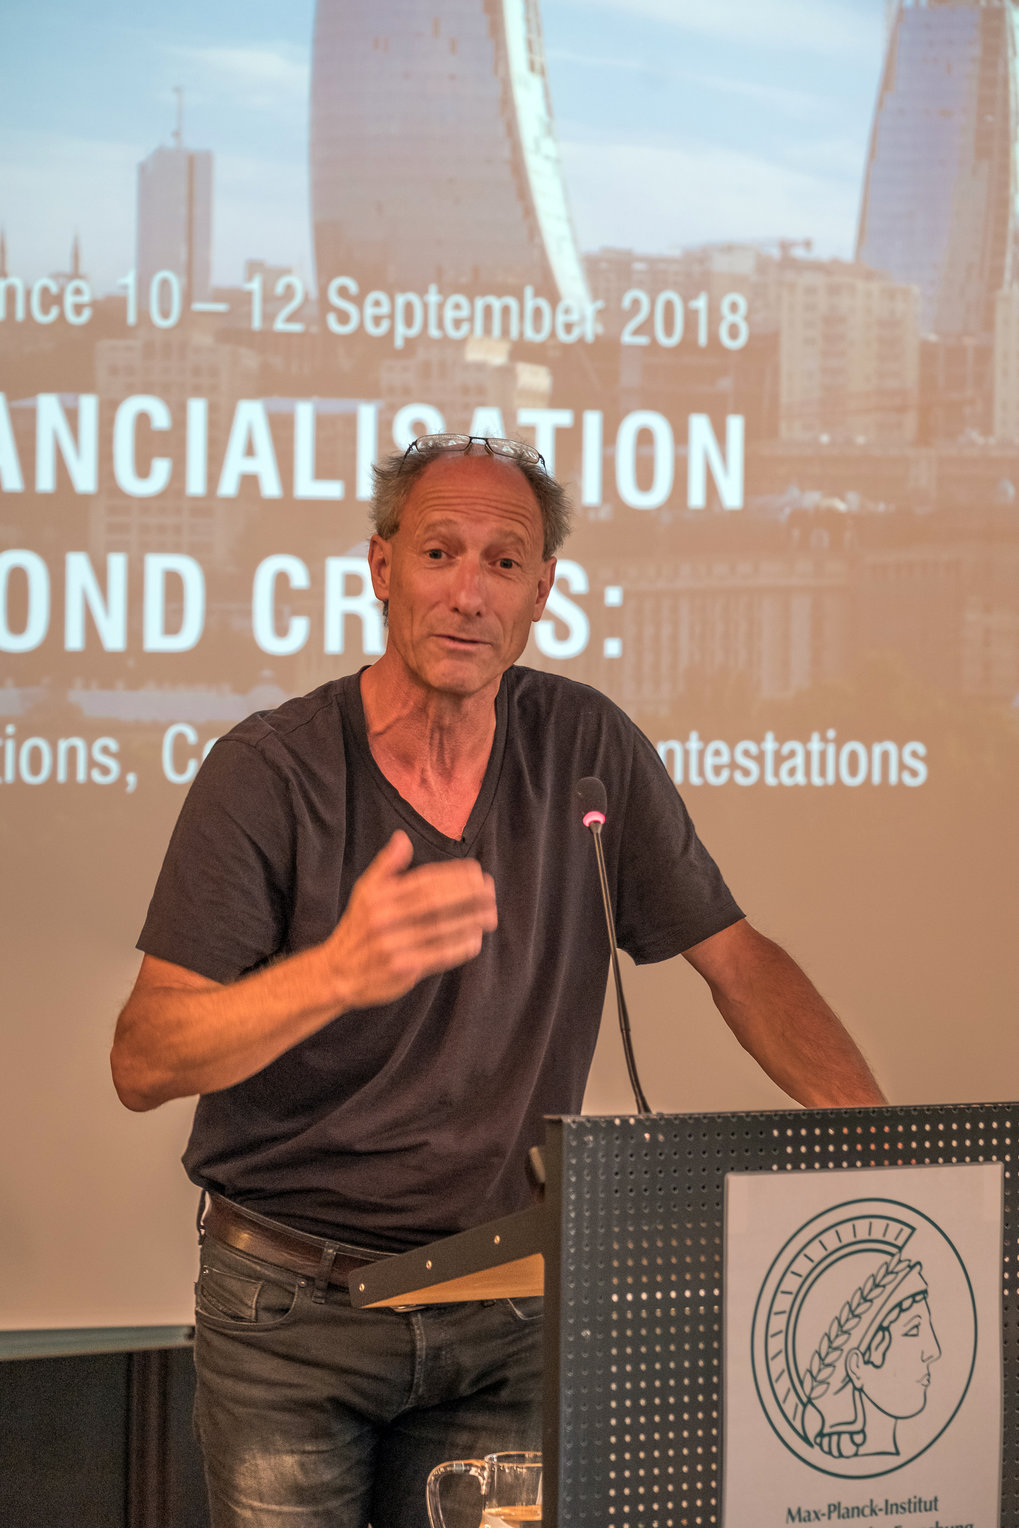 Don Kalb University of Bergen and University of Utrecht ■ Keynote Lecture: Financialization and Anthropological Theory: Reflections at the End of Western Hegemony ■ Foto: © Max-Planck-Institut für ethnologische Forschung